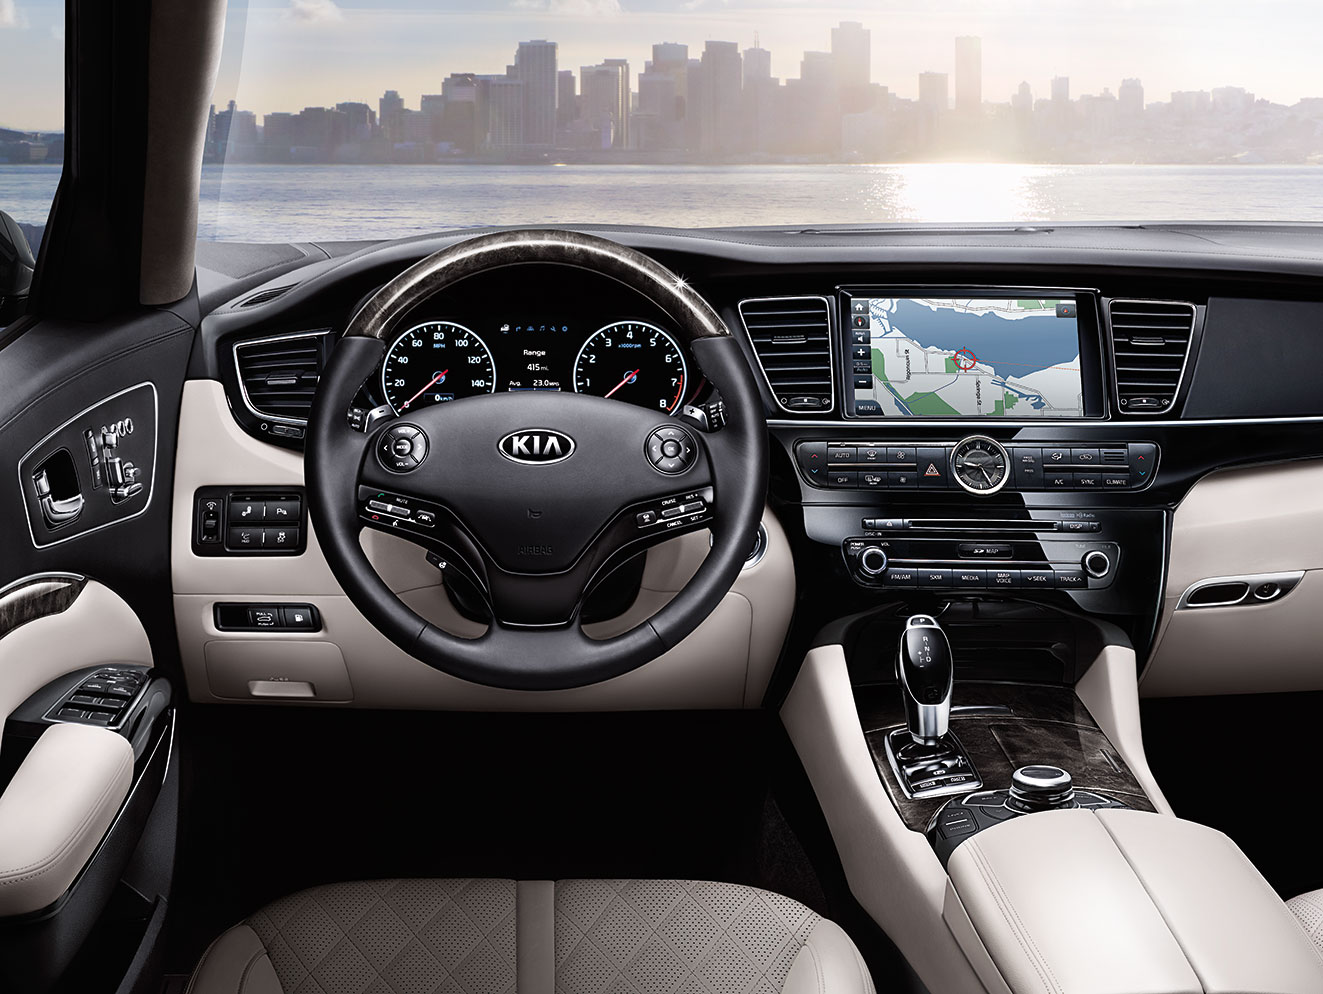 Kia K900 interior looking out at city skyline across a body of water